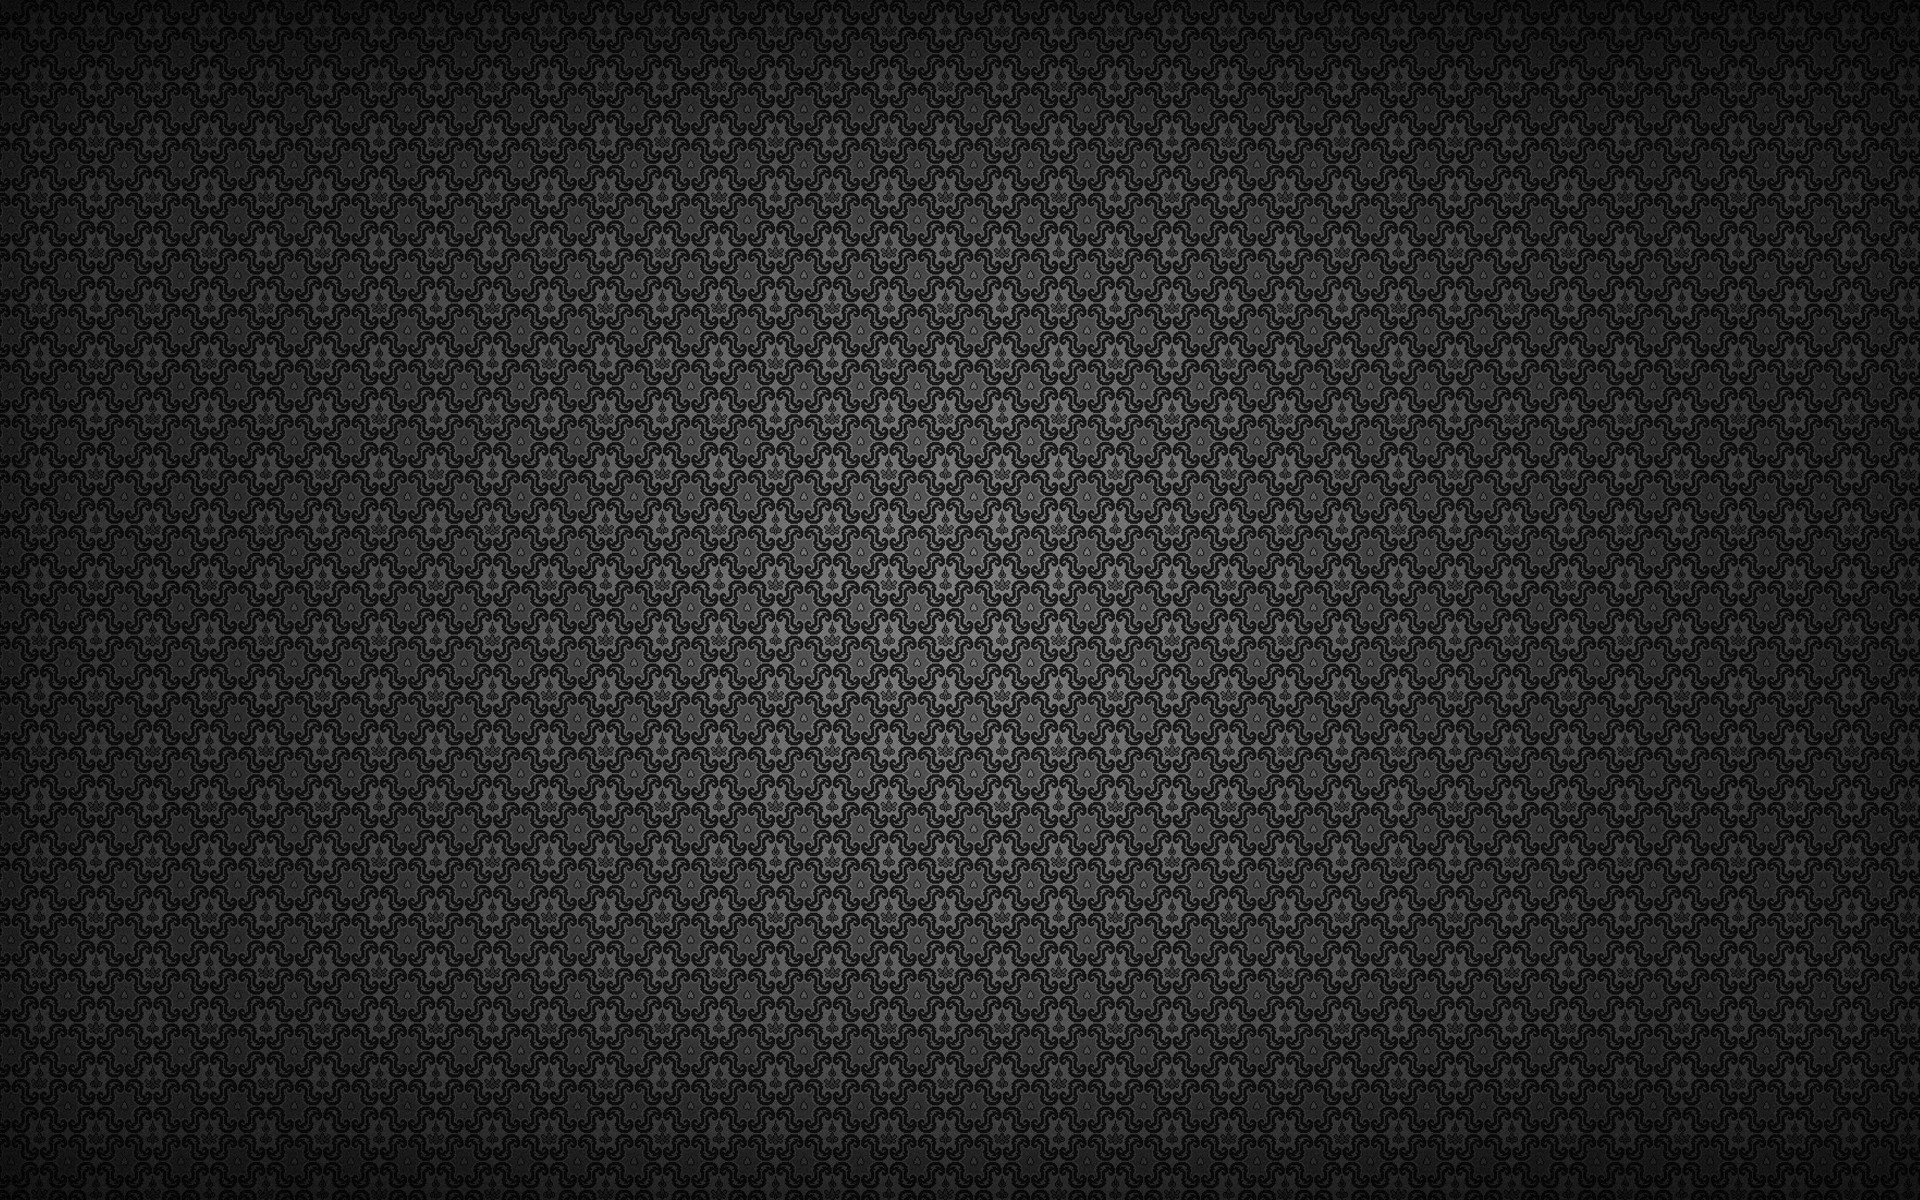 Texture Background Wallpaper #3756